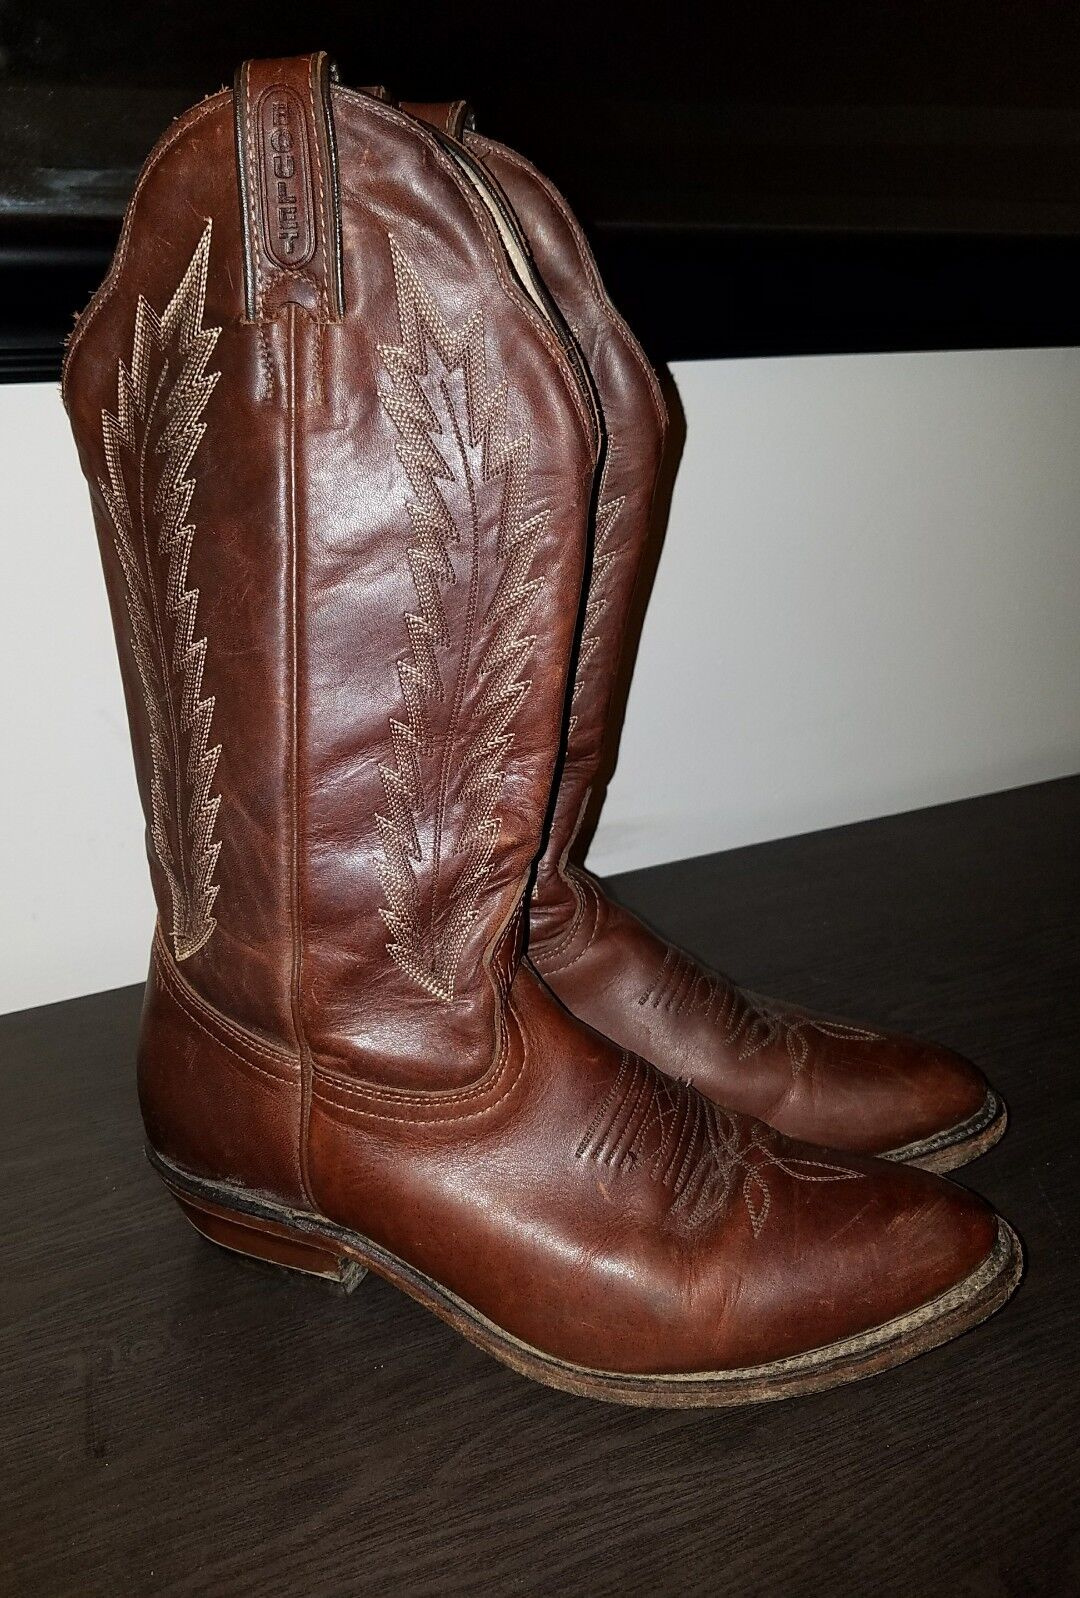 Uomo BOULET brown leather oiled cowboy western boots. Sz 8 B